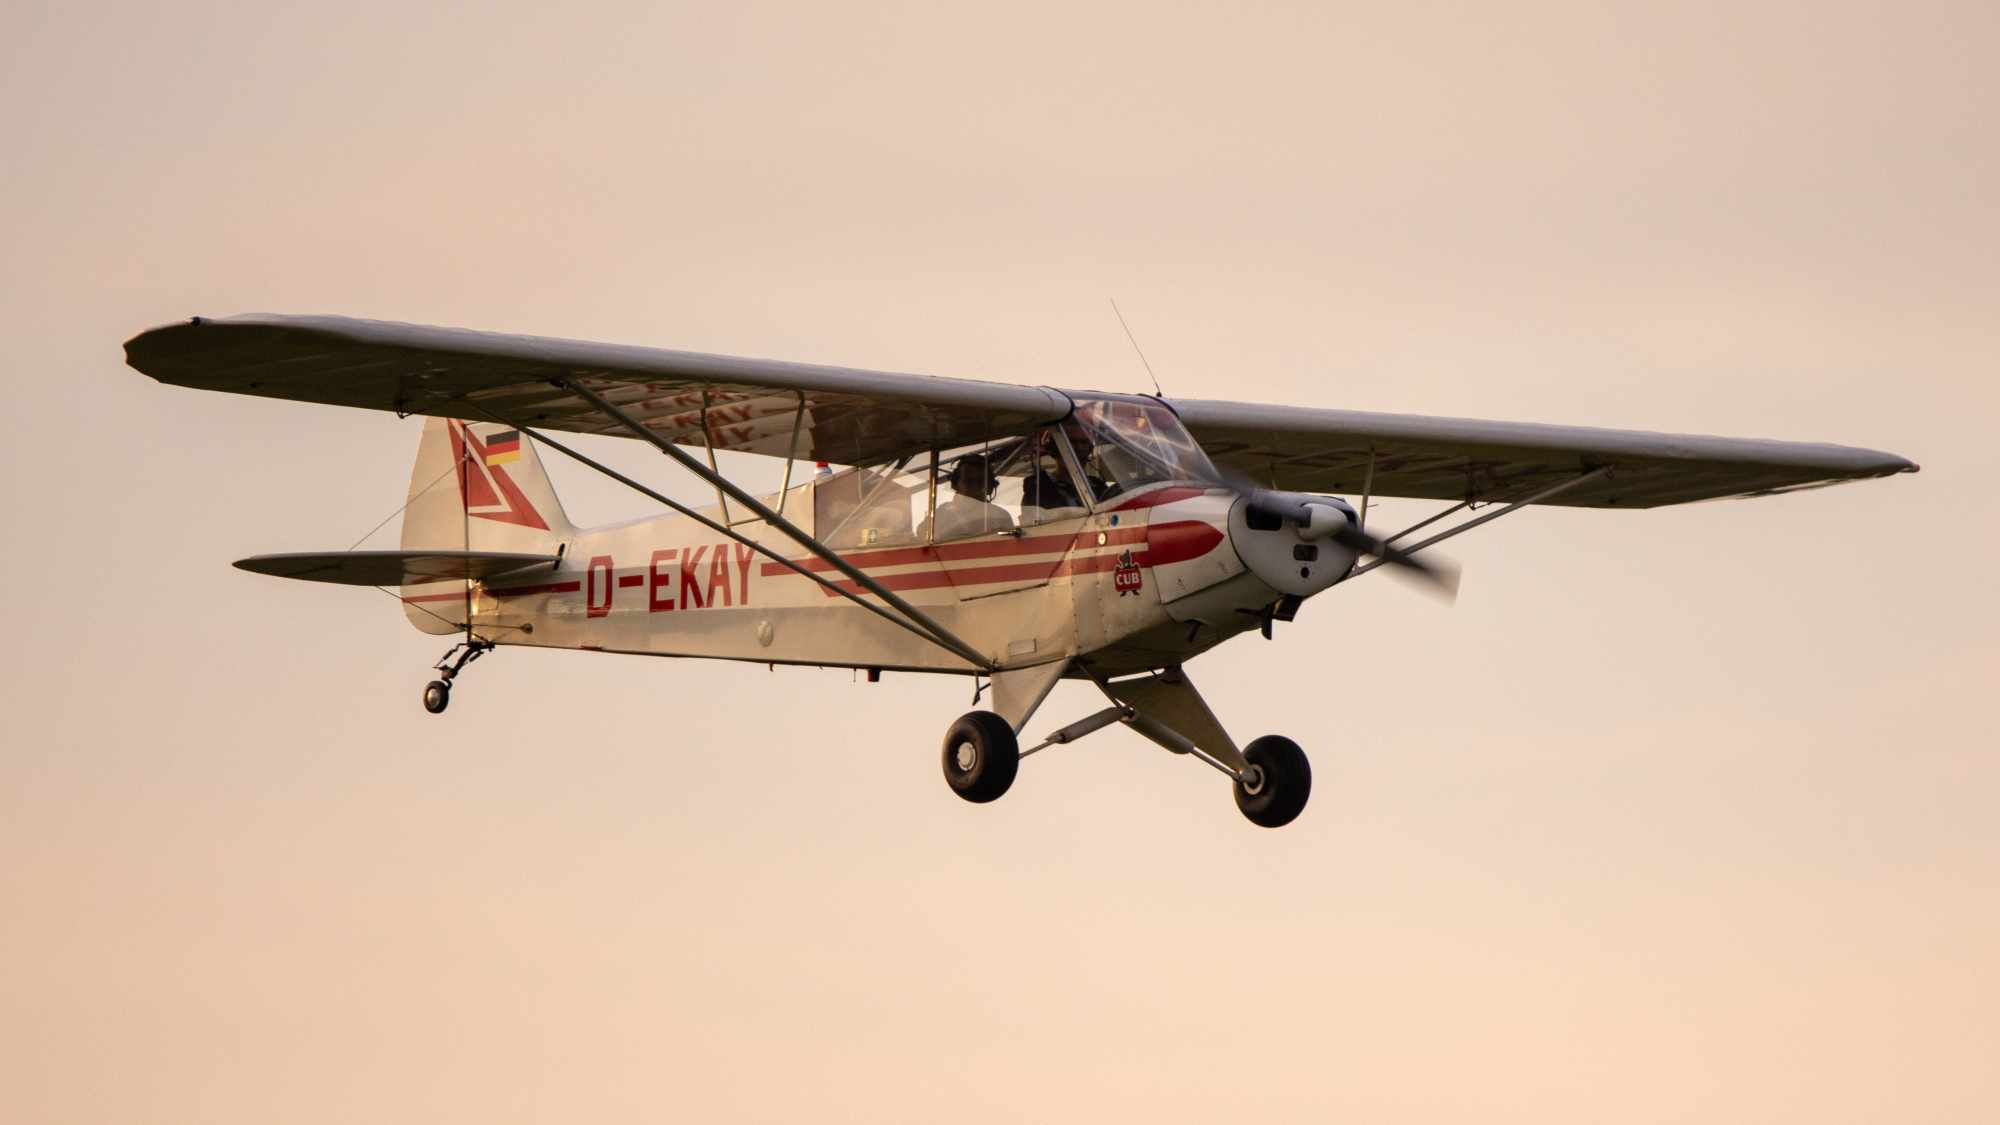 D-EKAY - Piper PA-18 Super Cub